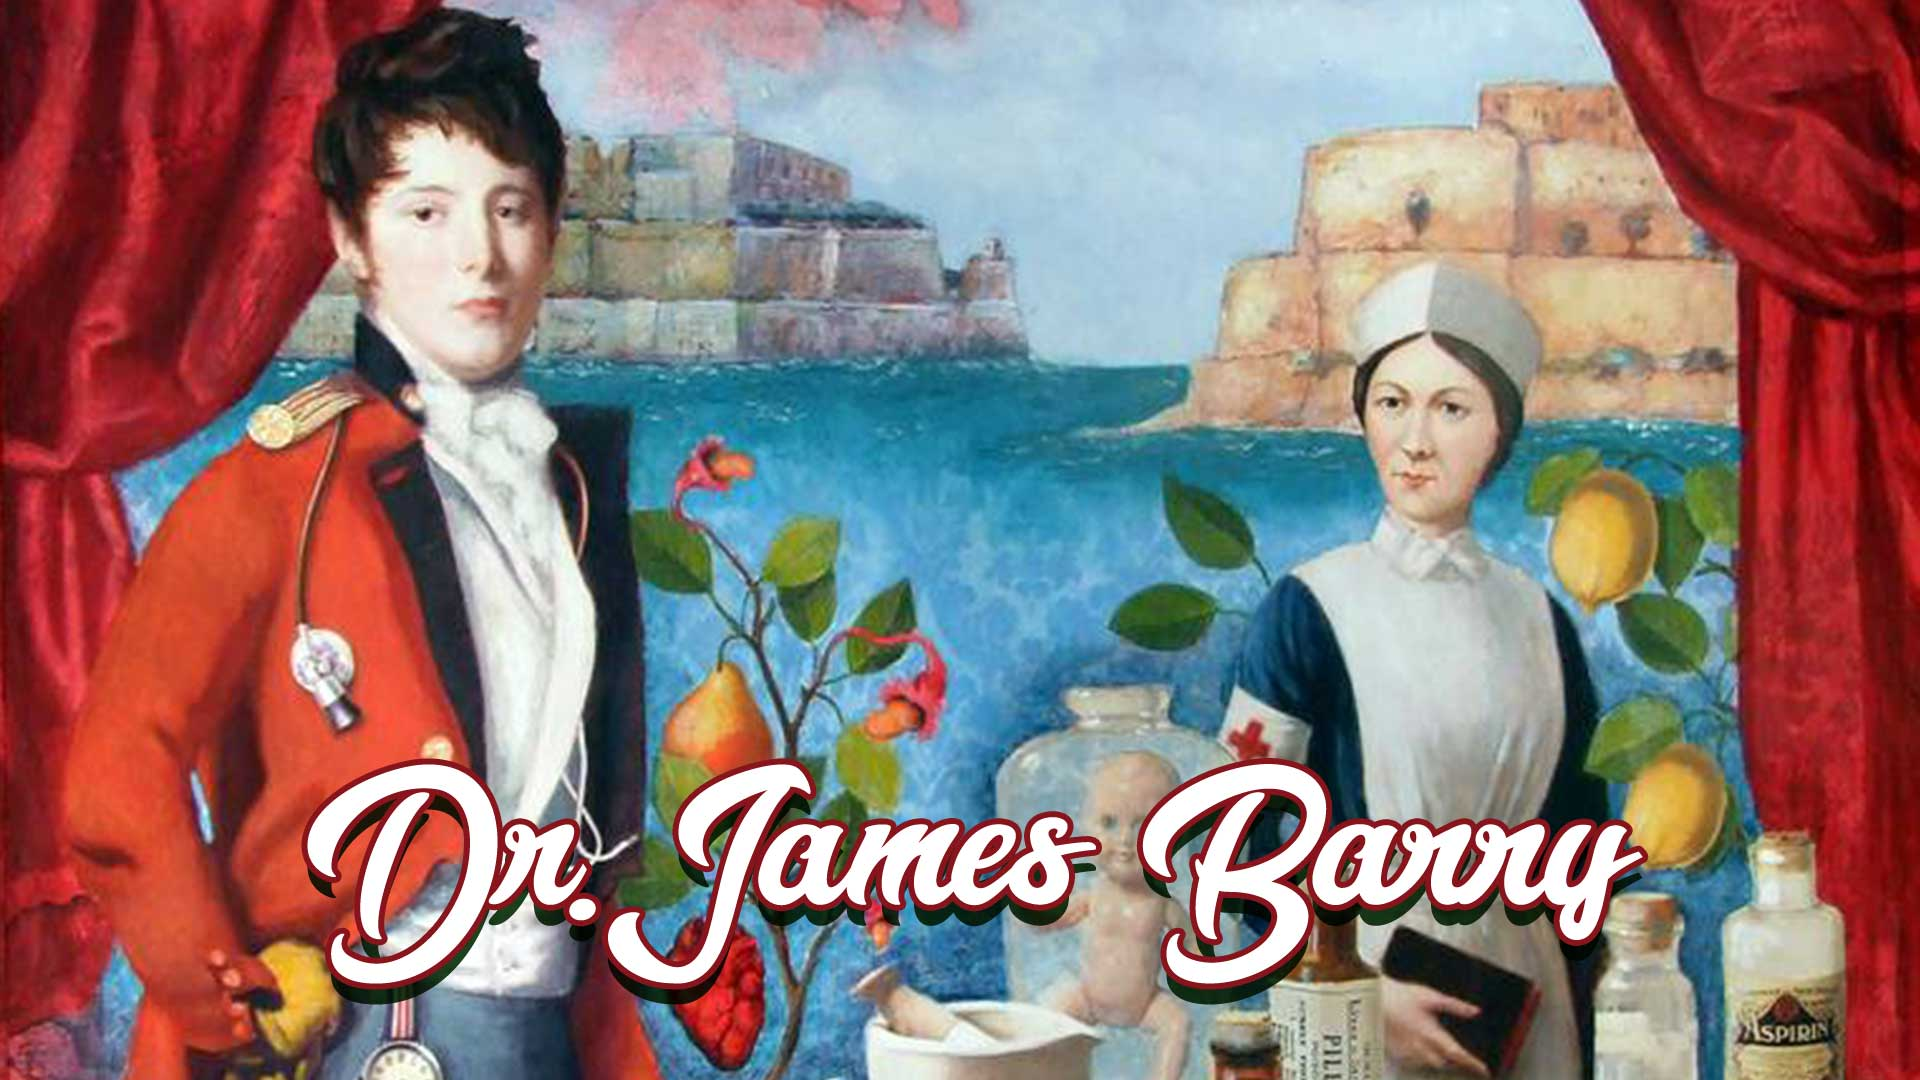 Dr. James Barry